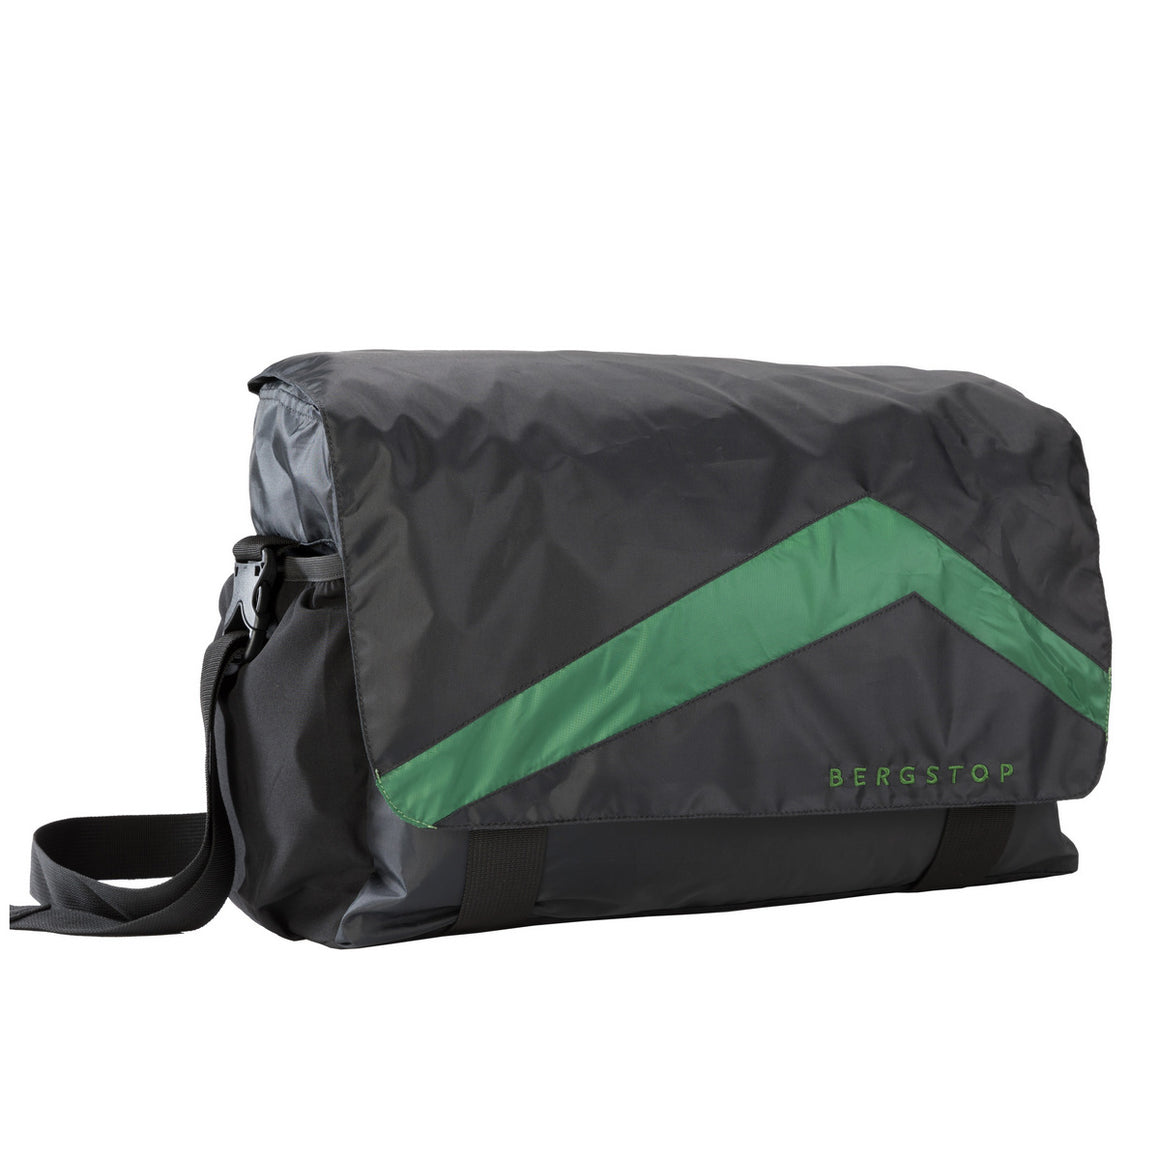 Cozybag Zippy - our extra wide sleeping bag with sleeves